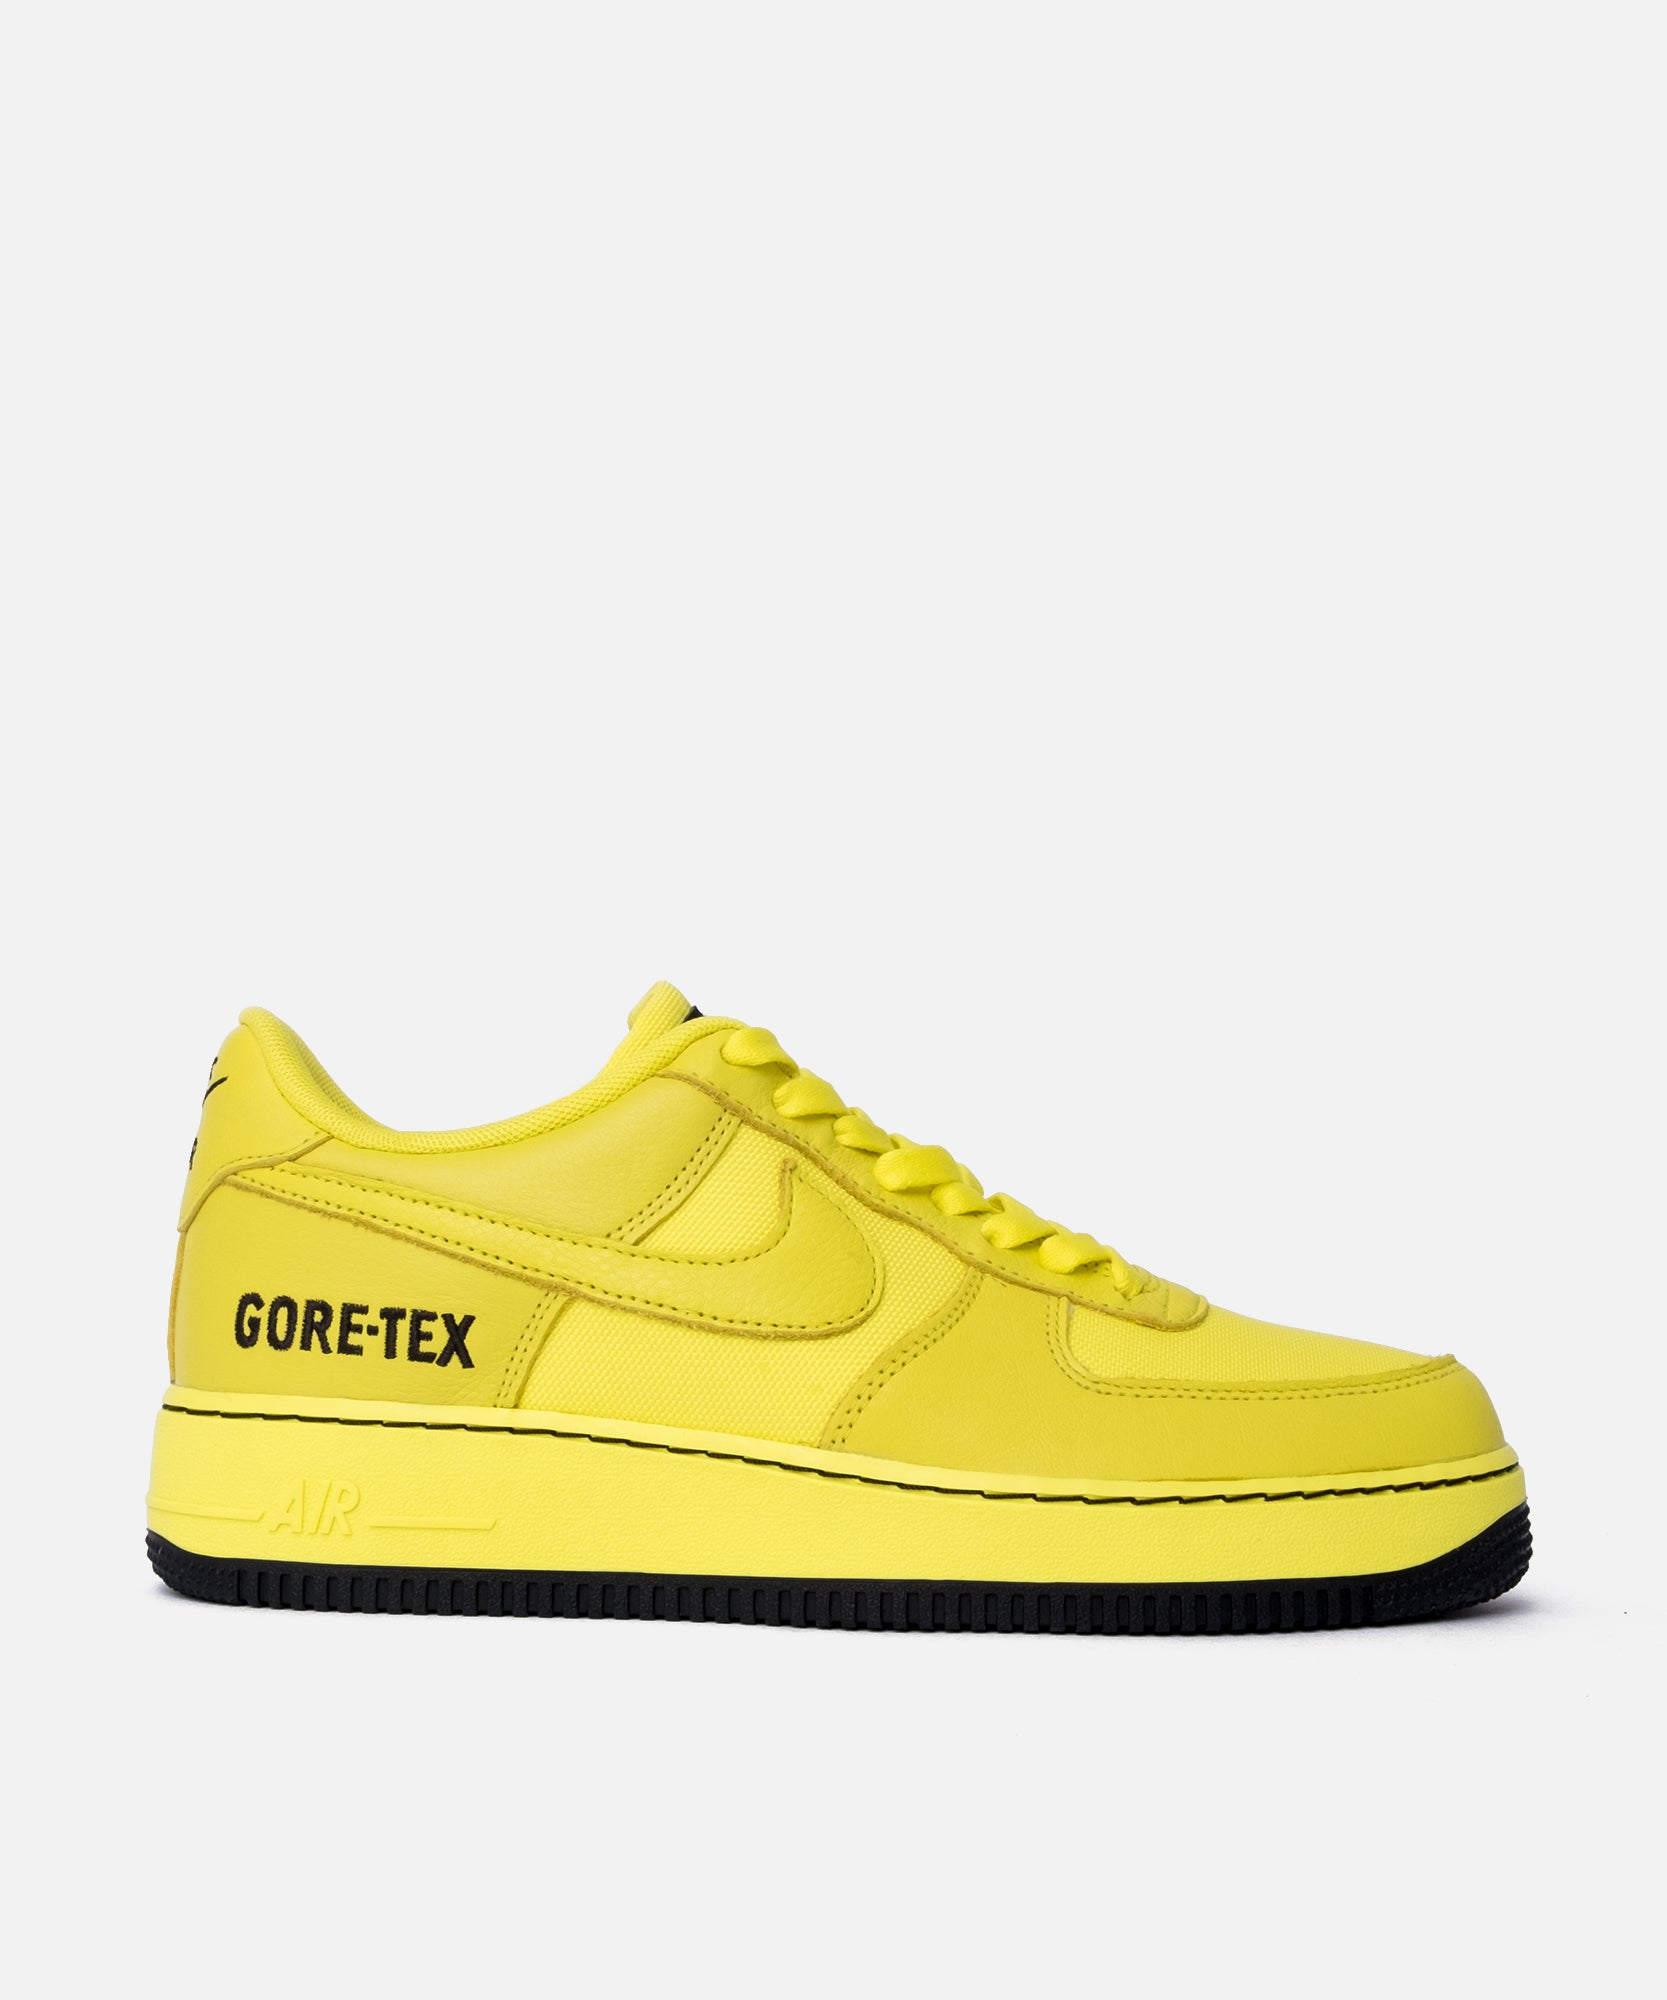 Air Force One Gore Tex Yellow